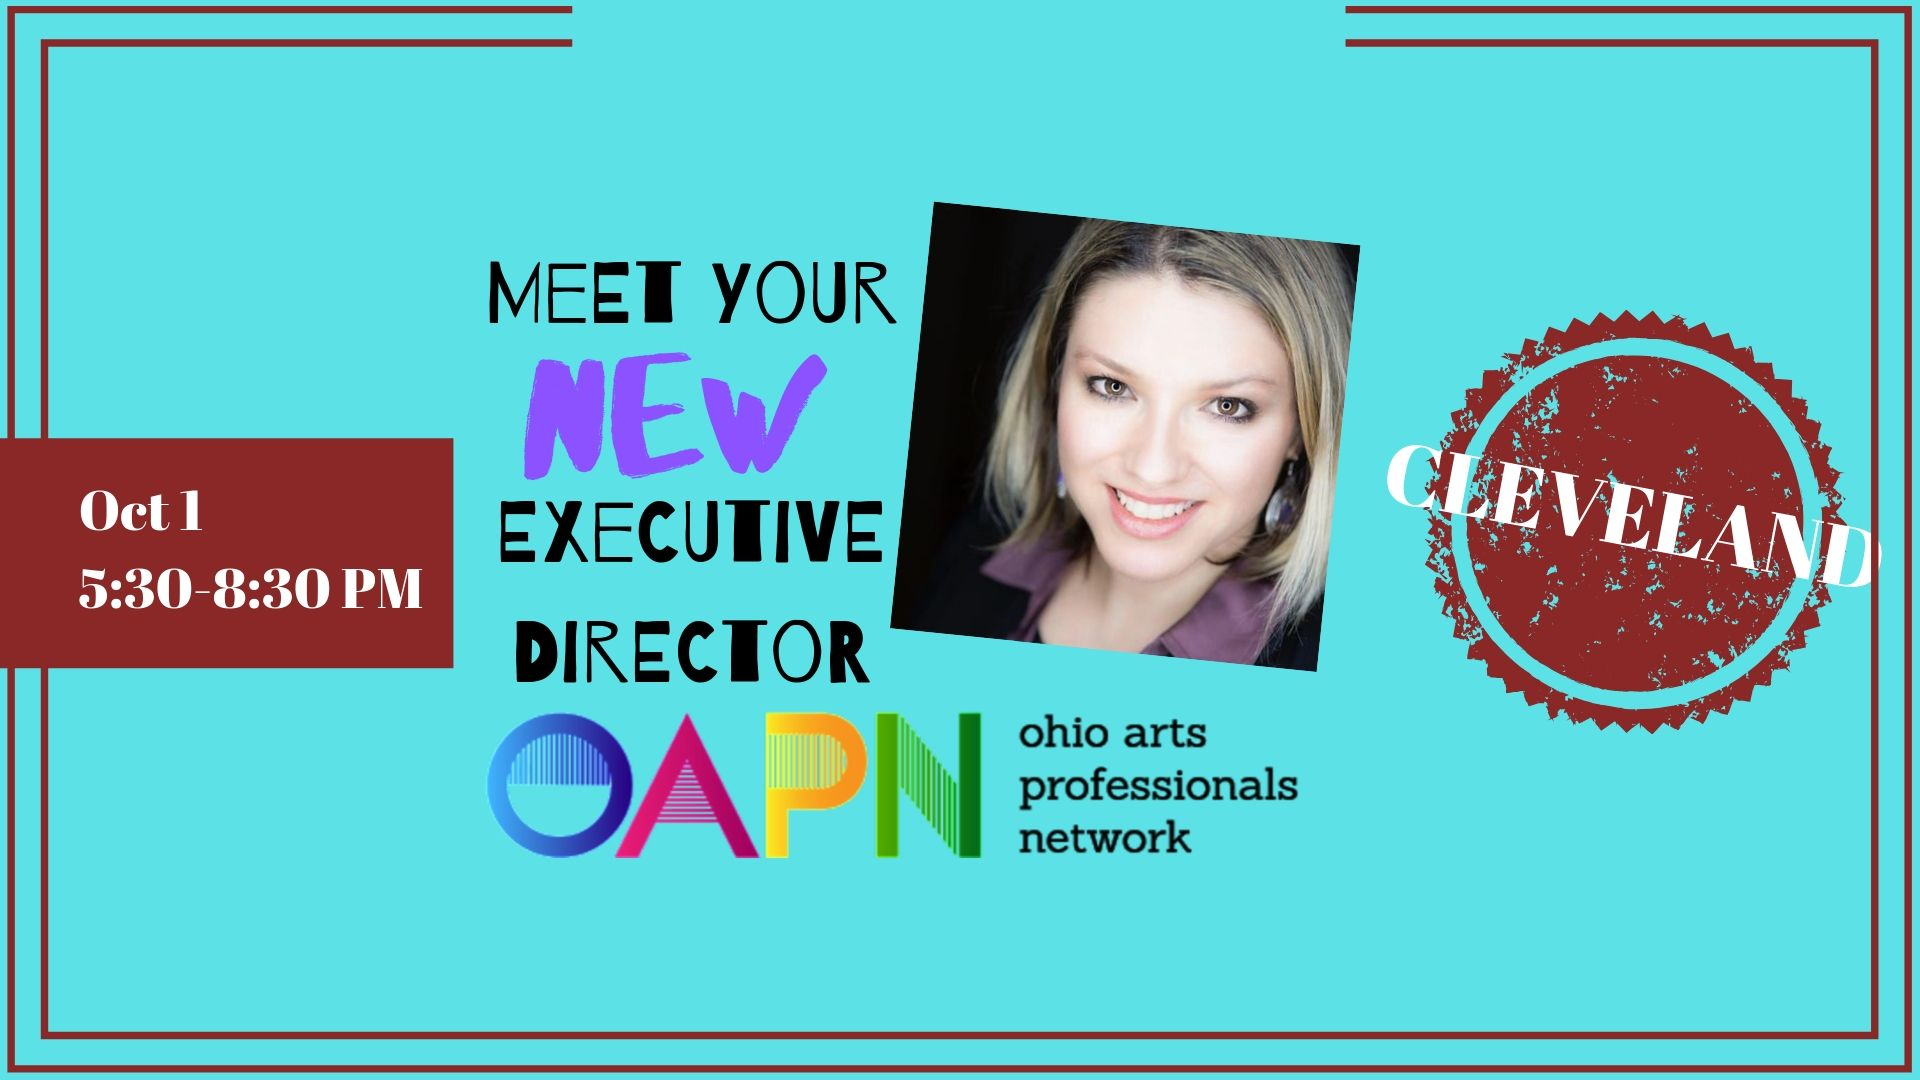 Meet Your New Executive Director - Cleveland